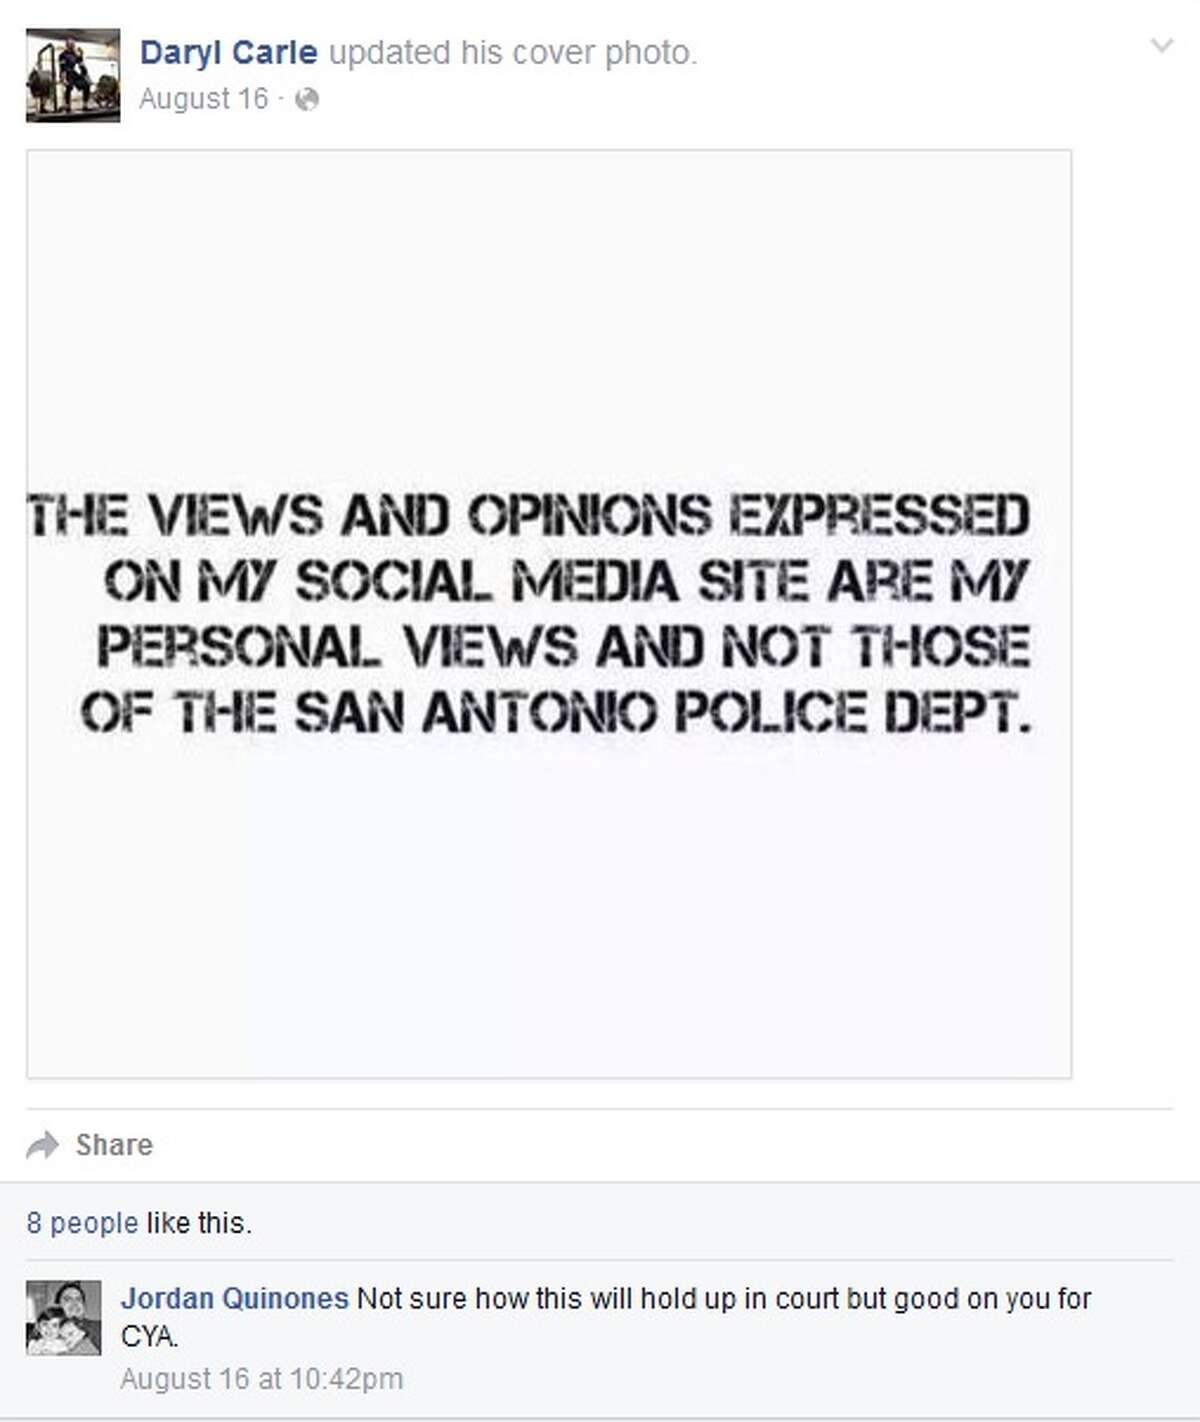 SAPD Officer Daryl Carle was suspended for 30 days for inappropriate social media posts, according to police records.